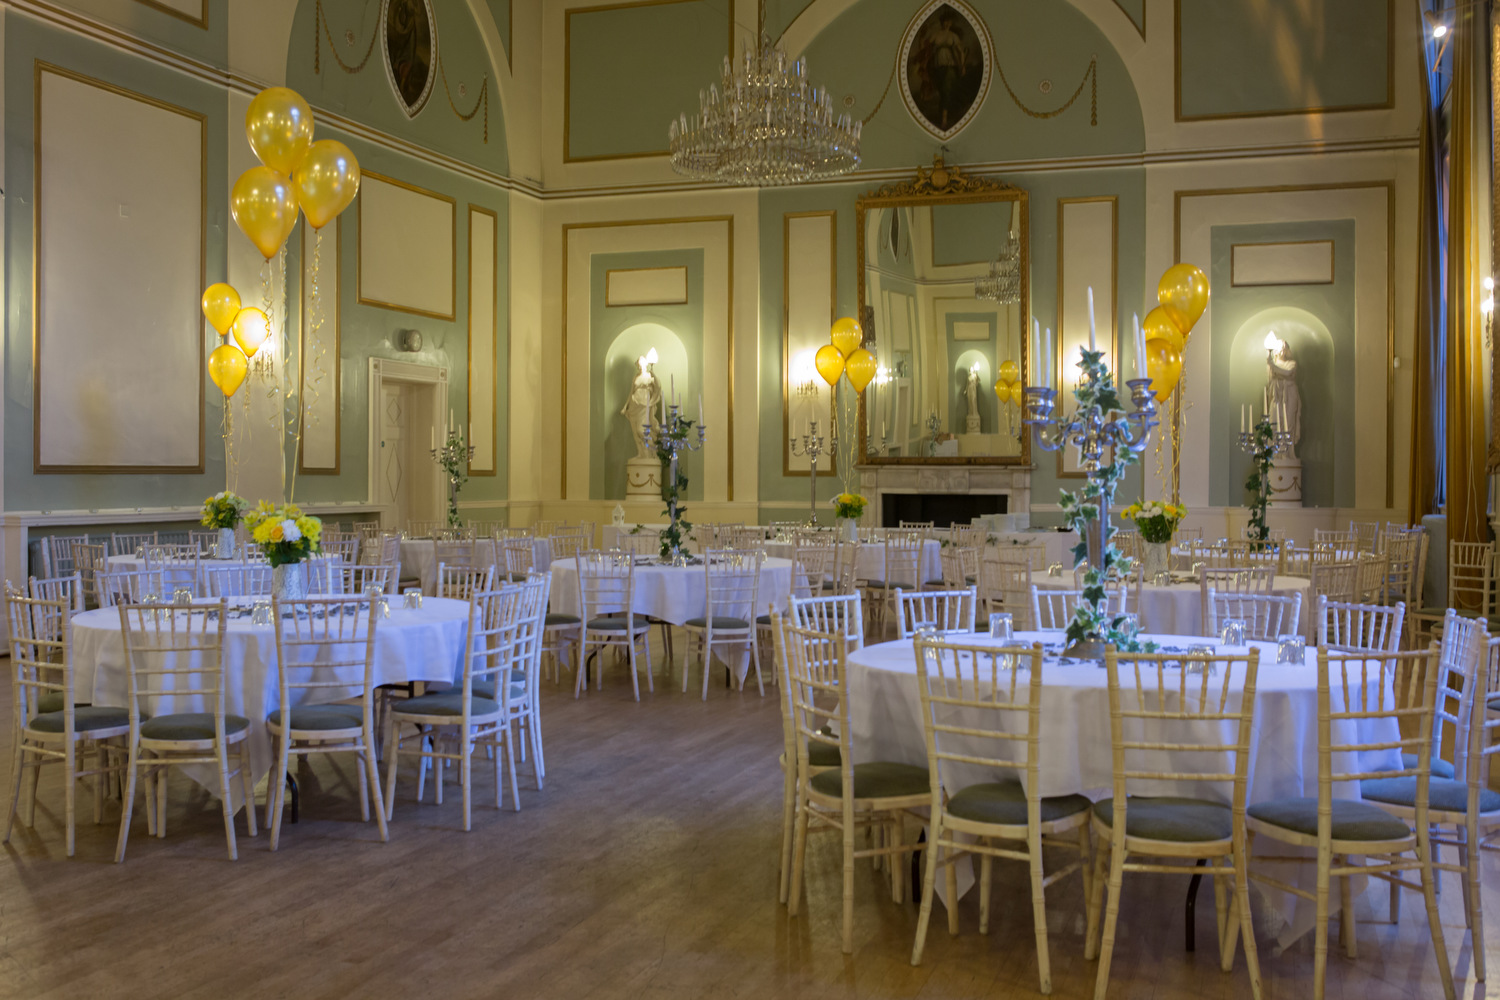 charnwood_weddings_city_rooms_leicester_dave_jane110.JPG